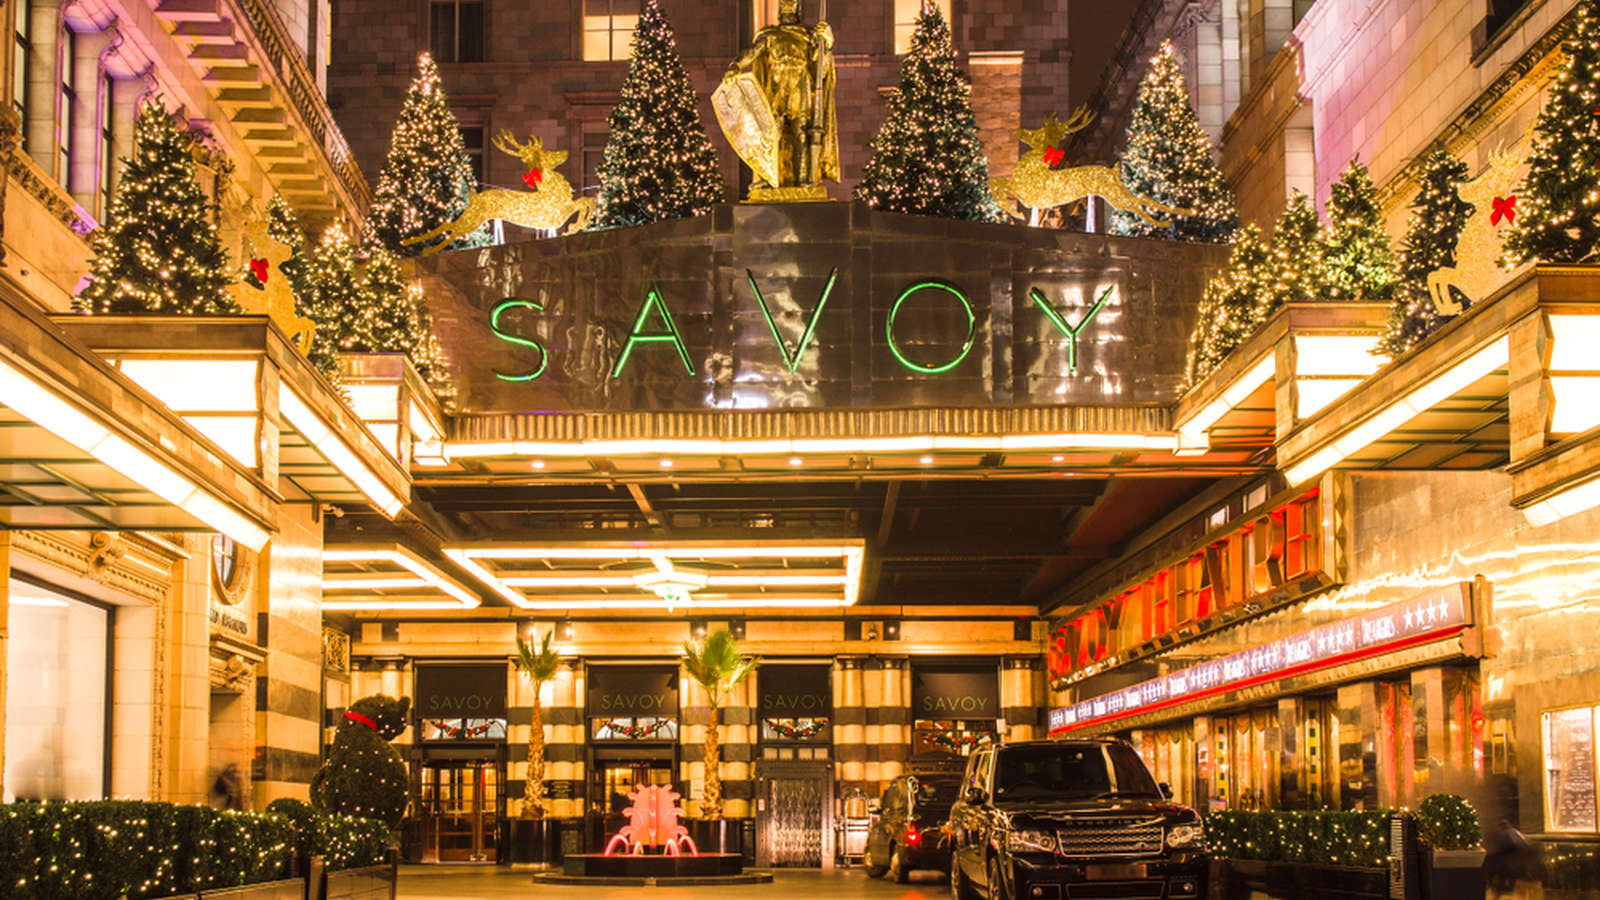 The Savoy Hotel - One of London's Most Prestigious Hotels